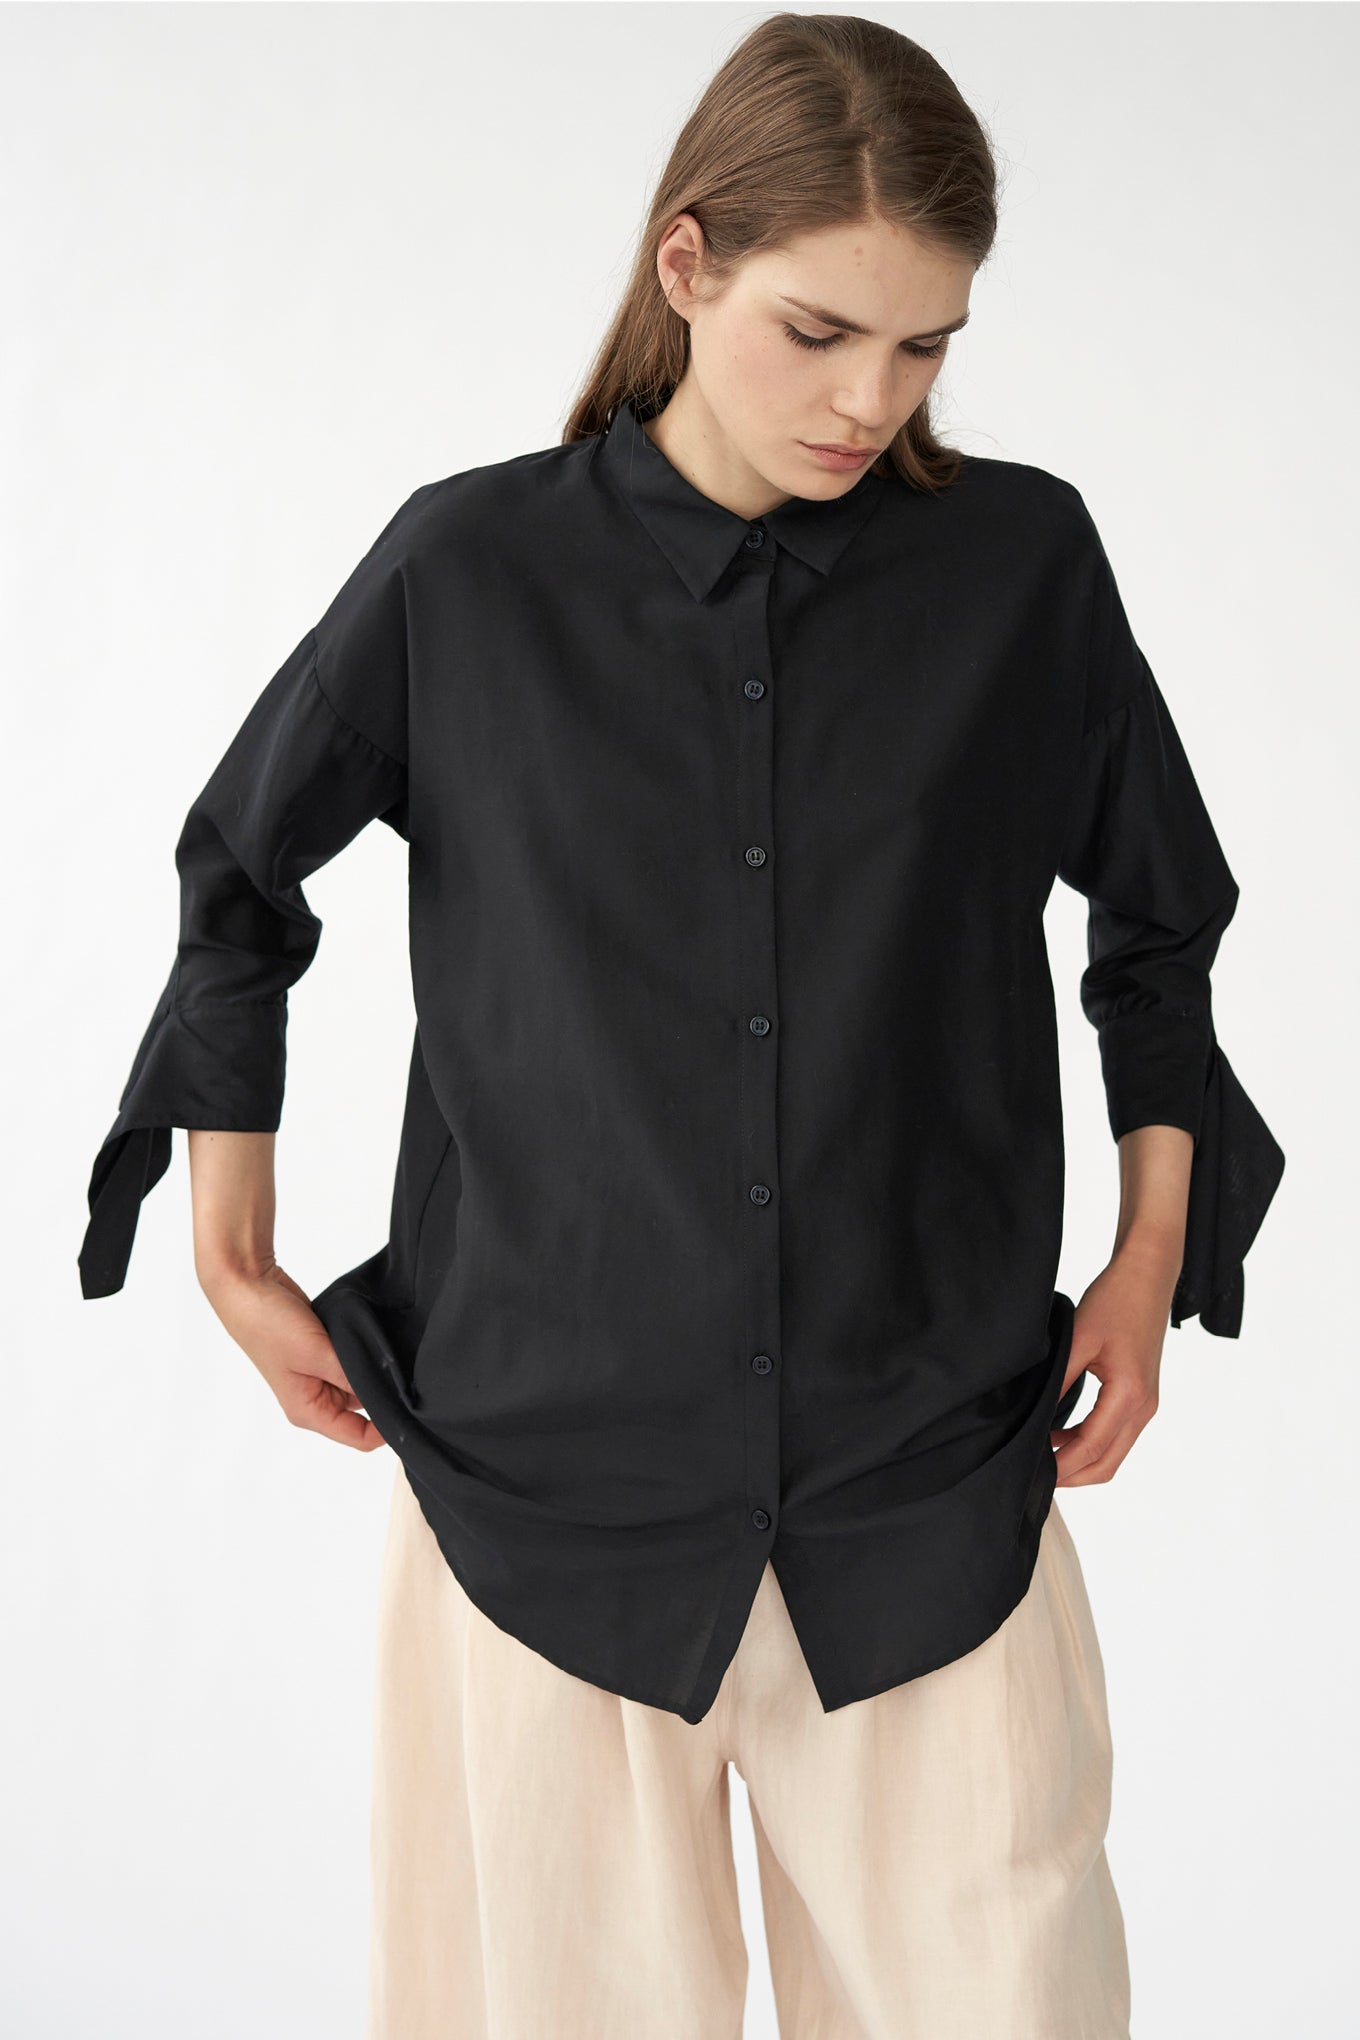 Bianca Bow Shirt - Black  - Silk/Cotton